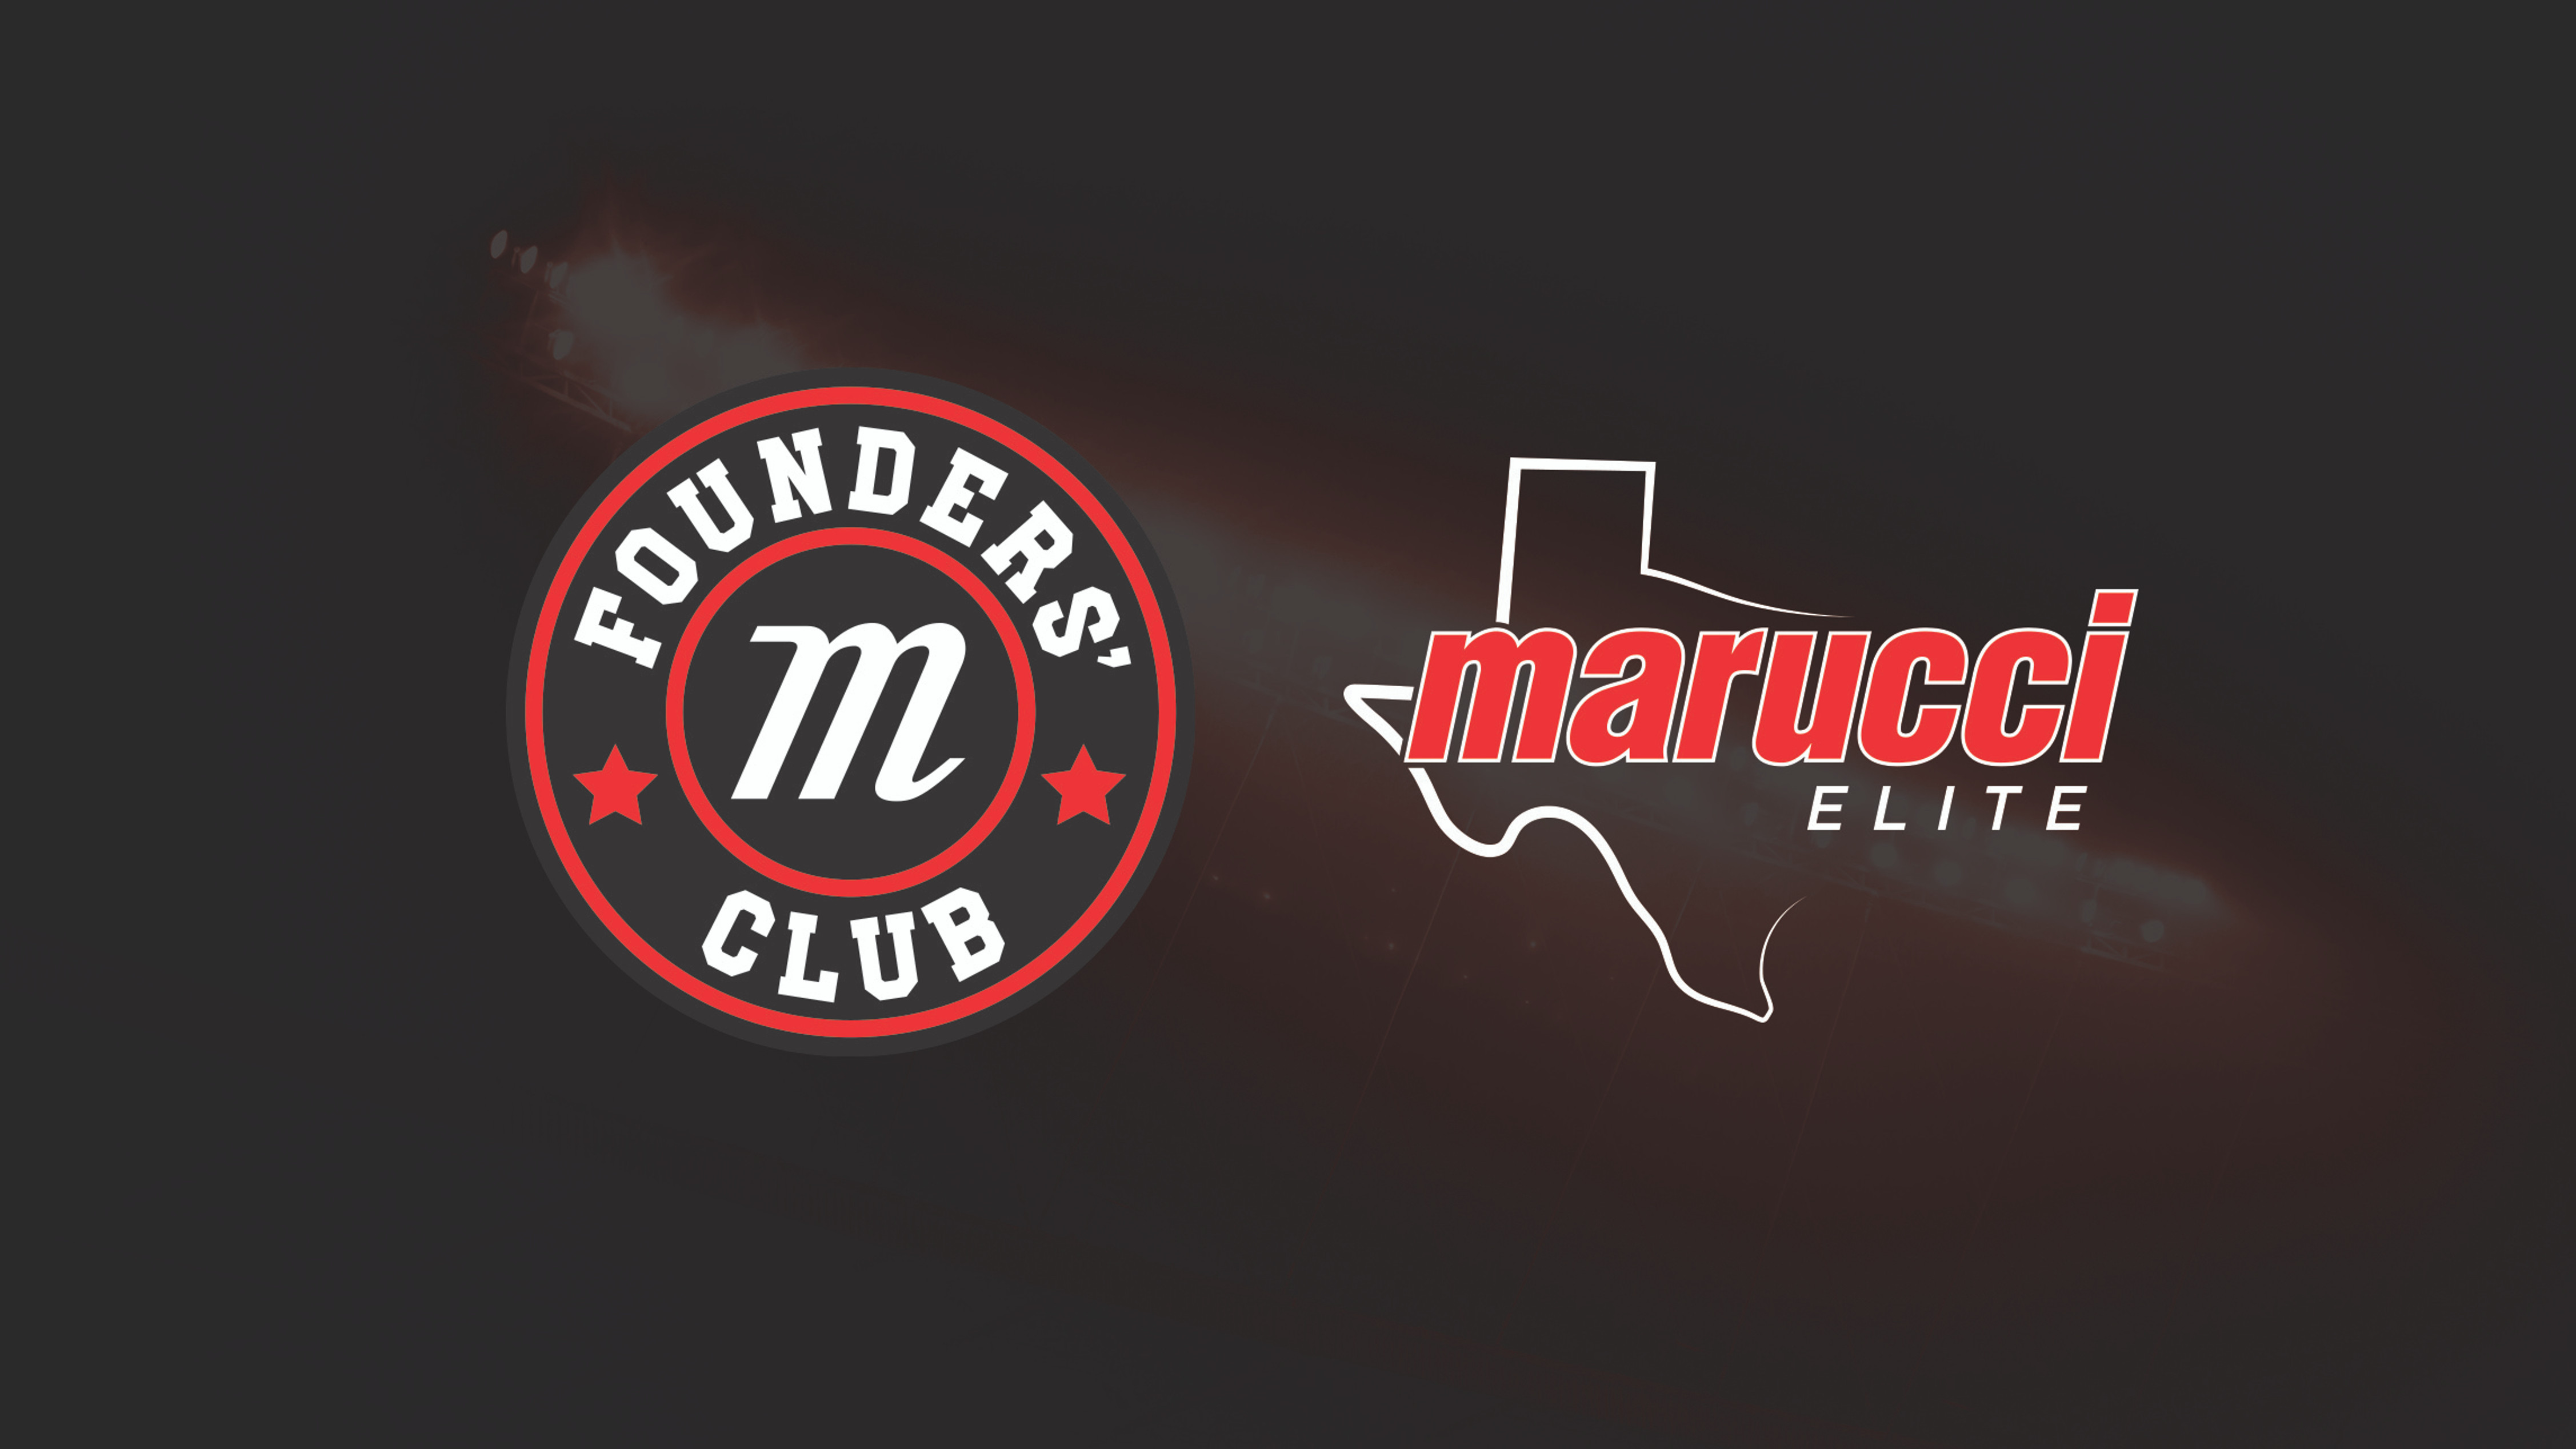 MARUCCI ELITE TX AND FOUNDERS' CLUB EXTEND PARTNERSHIP